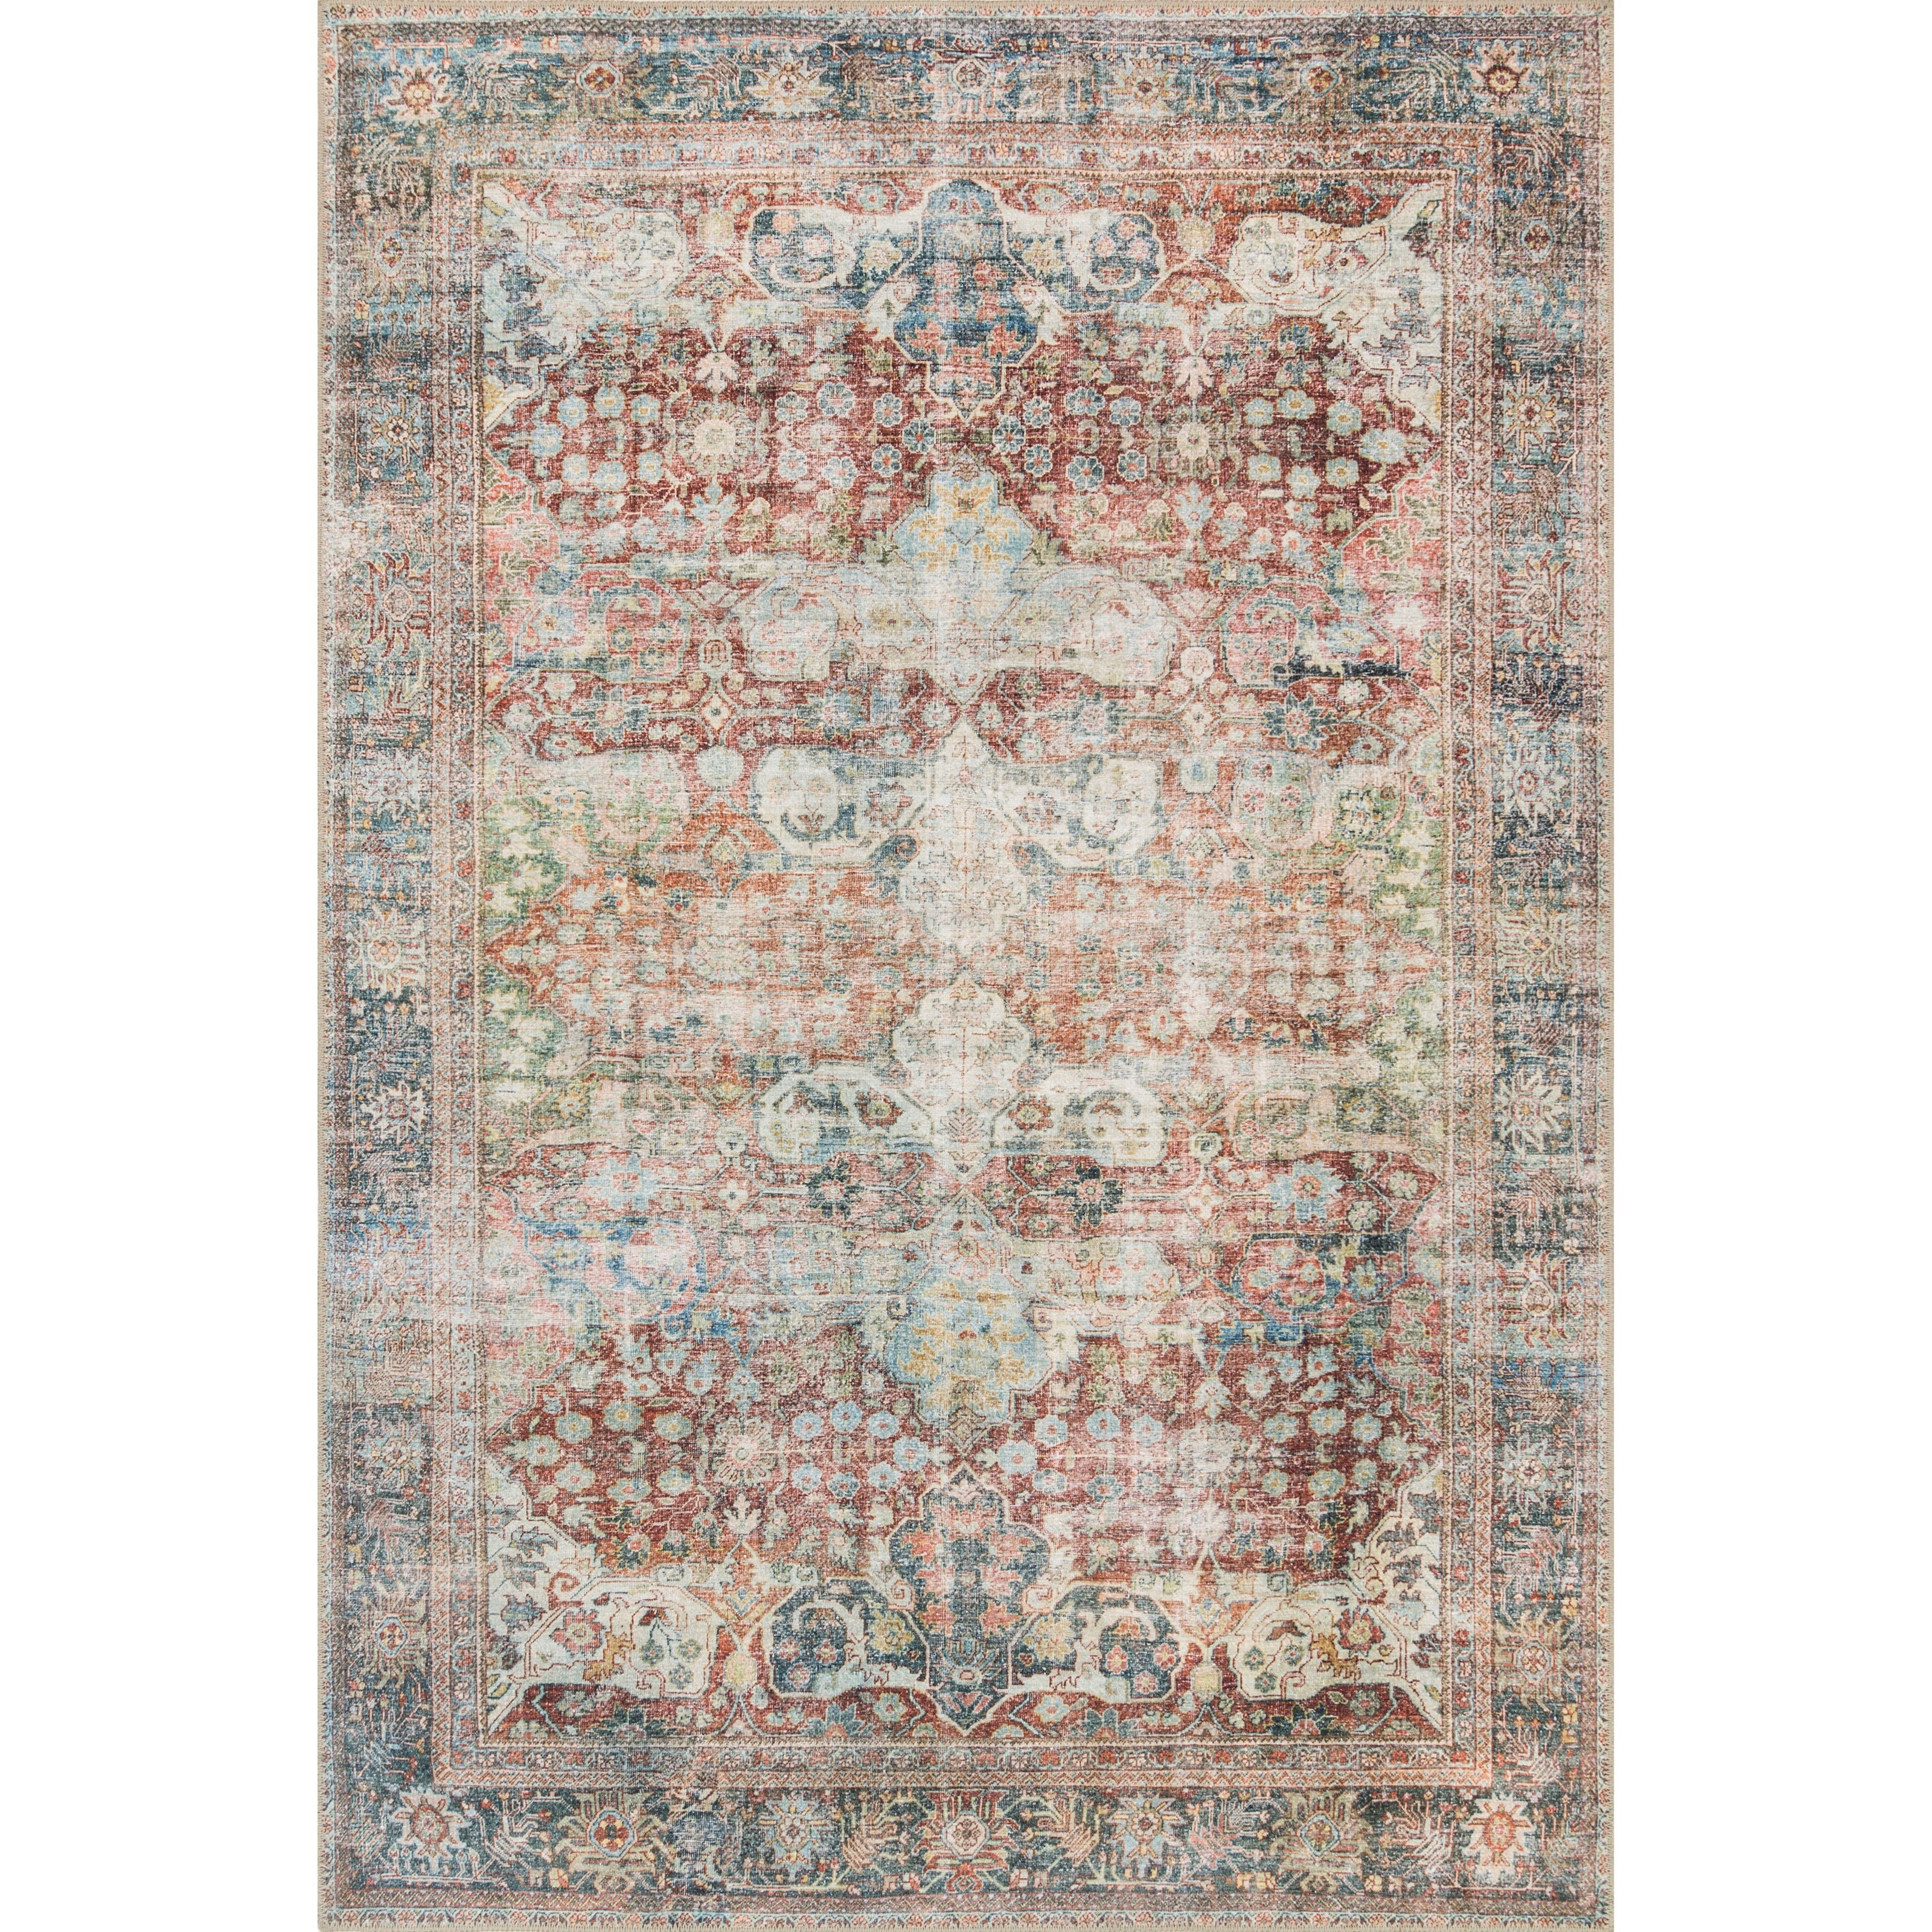 "Loren 8'4"" x 11'6"" Brick / Multi Rug by Loloi Rugs at Miller Waldrop Furniture and Decor"